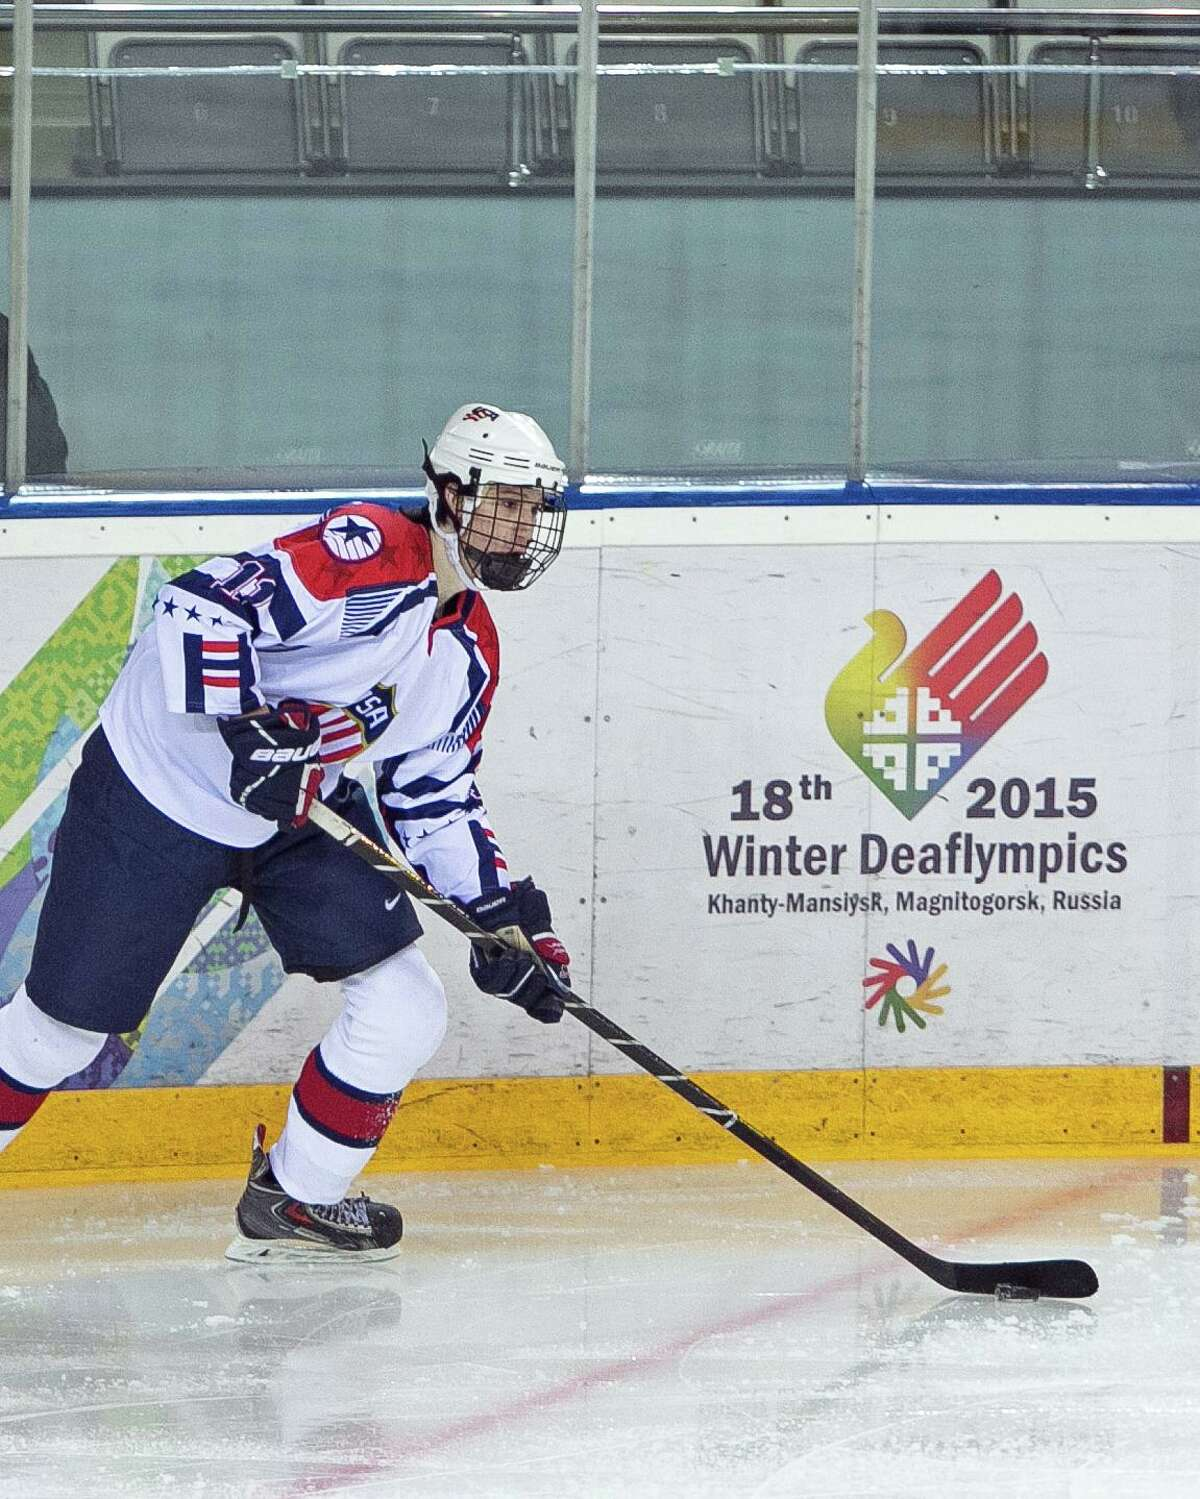 Garrett Gintoli of Shelton won a bronze medal with the U.S. ice hockey team last month at the 2015 Winter Deaflympics in Russia. Gintoli, who played junior hockey with the South Shore (Mass.) Kings this season, was joined on Team USA by his older brother, Peter.